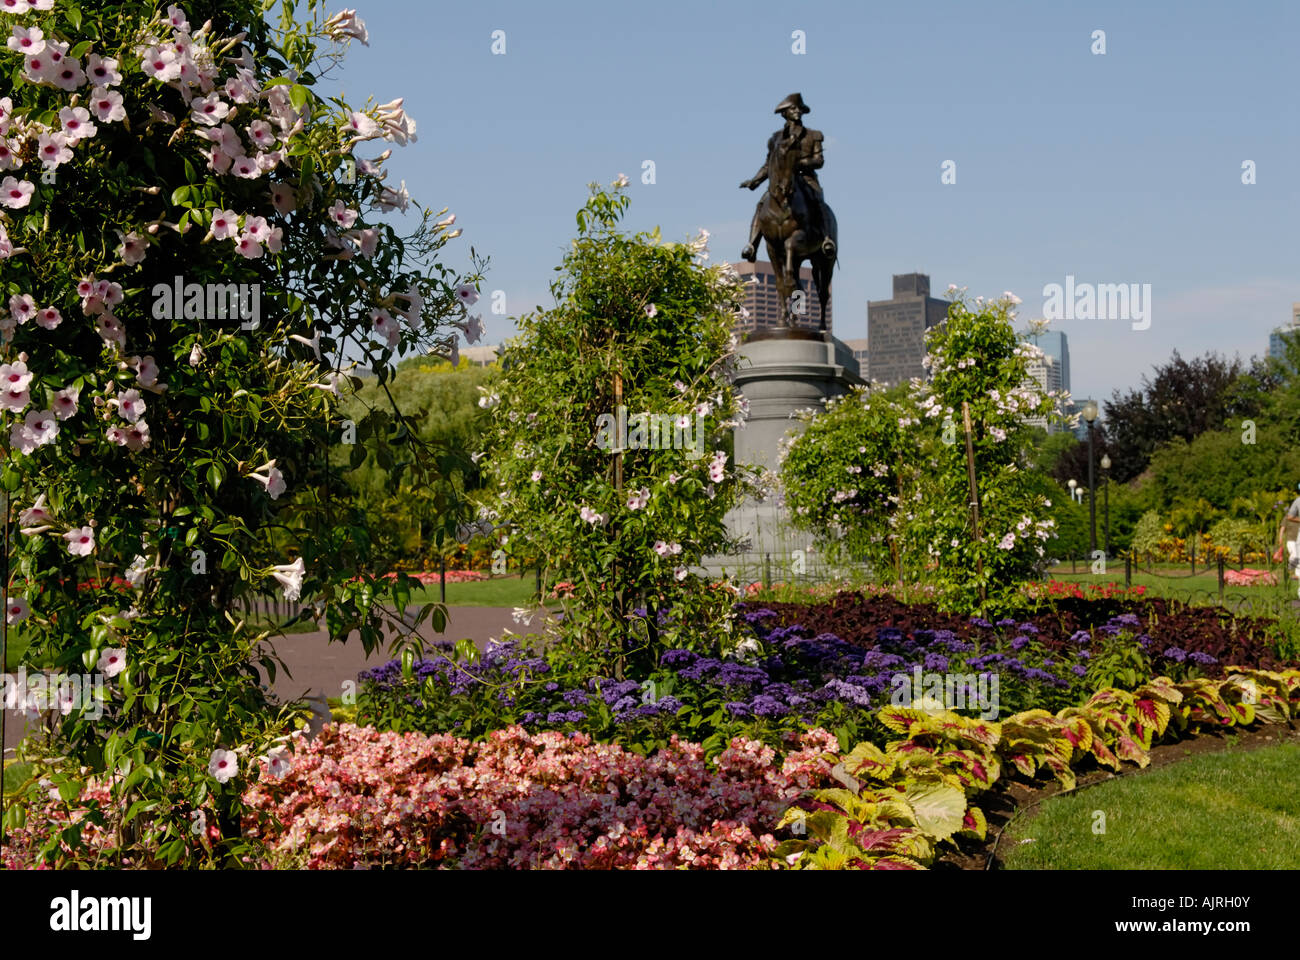 Boston Common Public Gardens Imagen De Stock